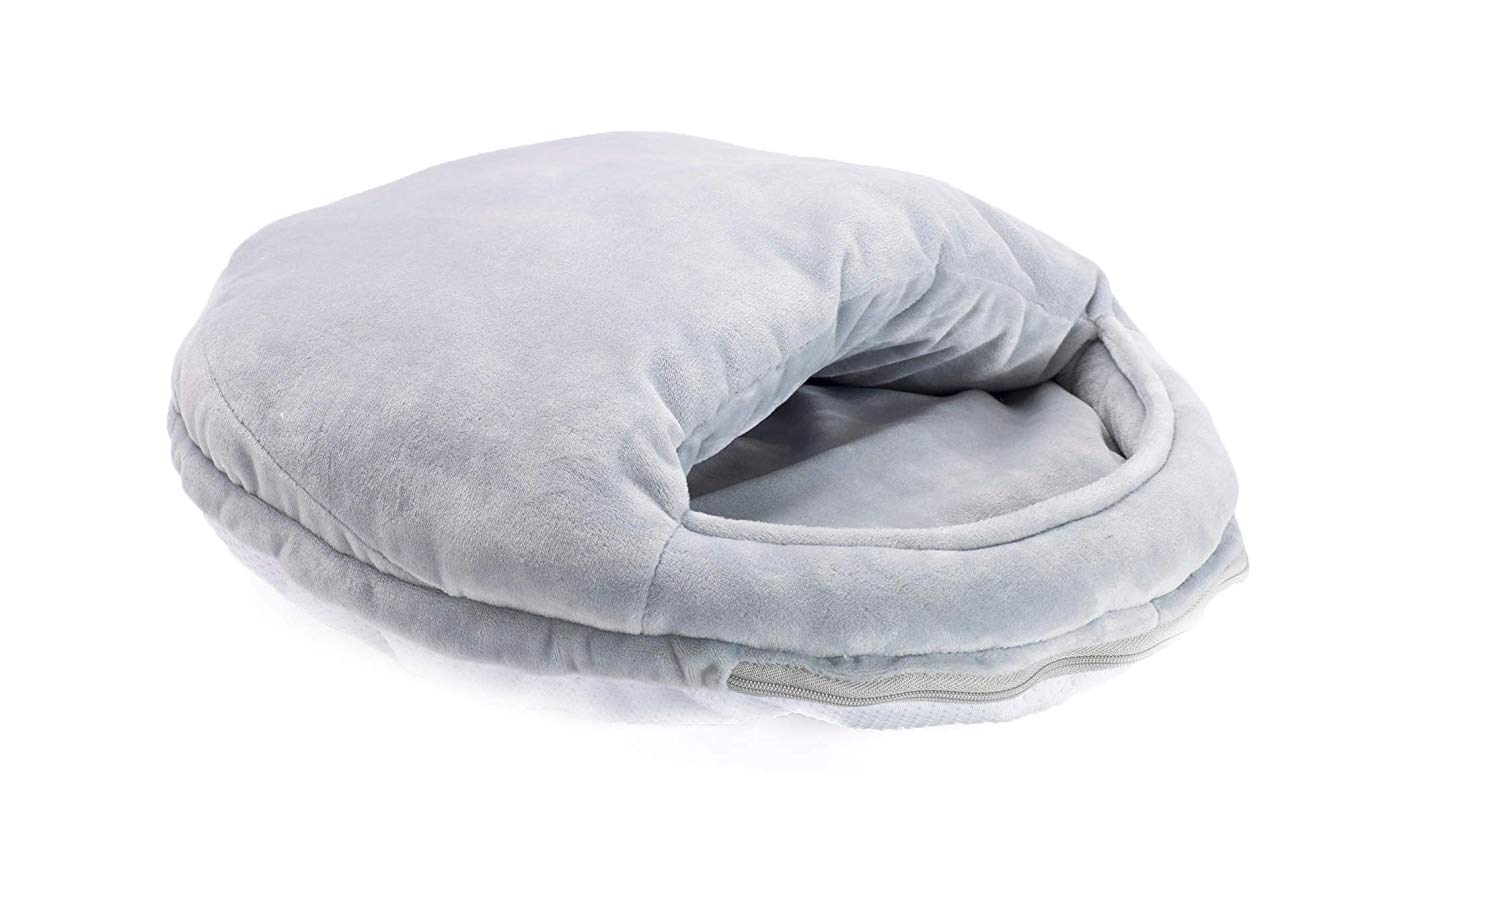 Foot Warming Pouch in gray